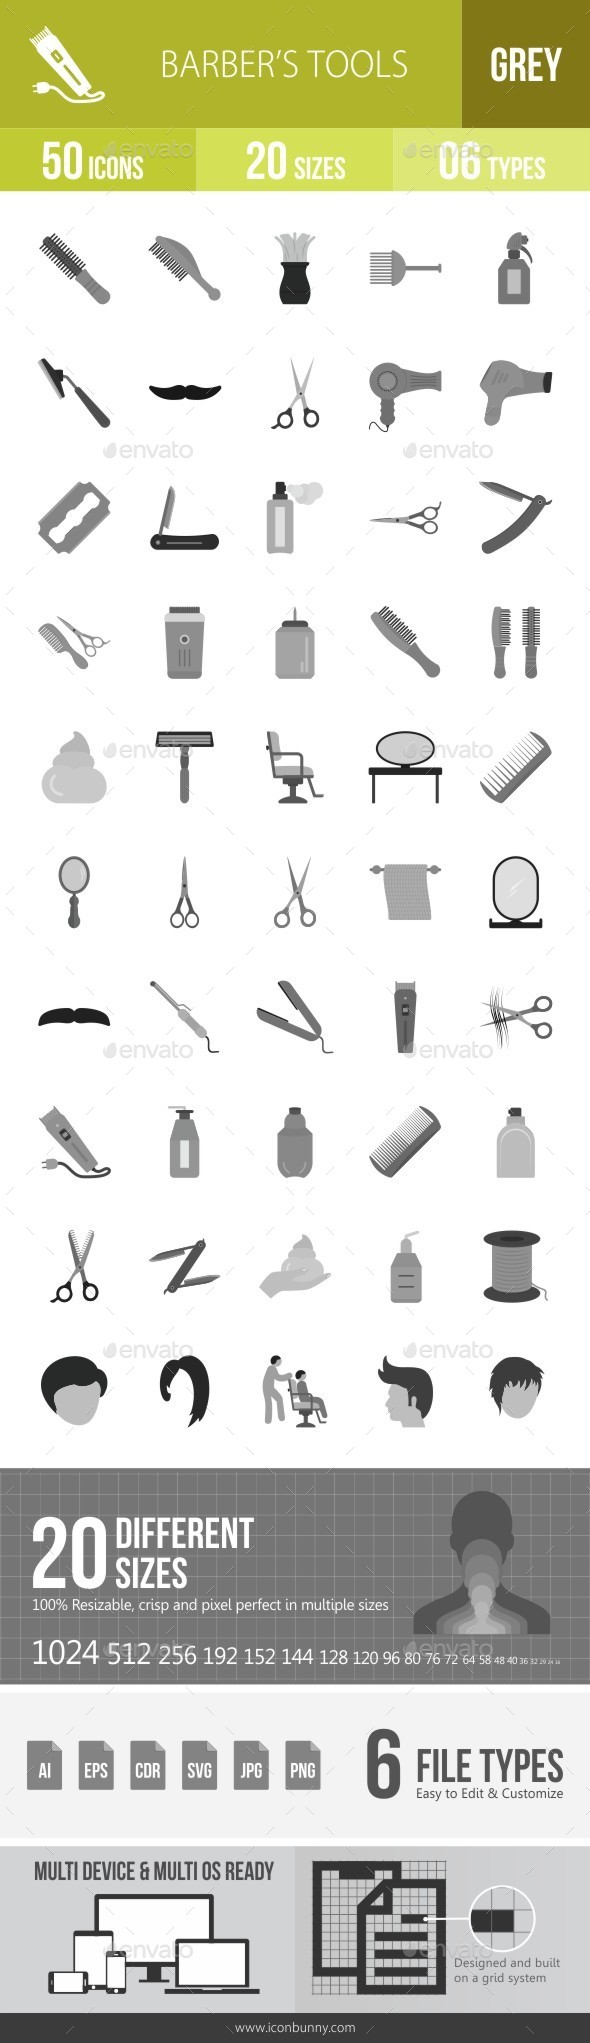 Barber's Tools Greyscale Icons - Icons